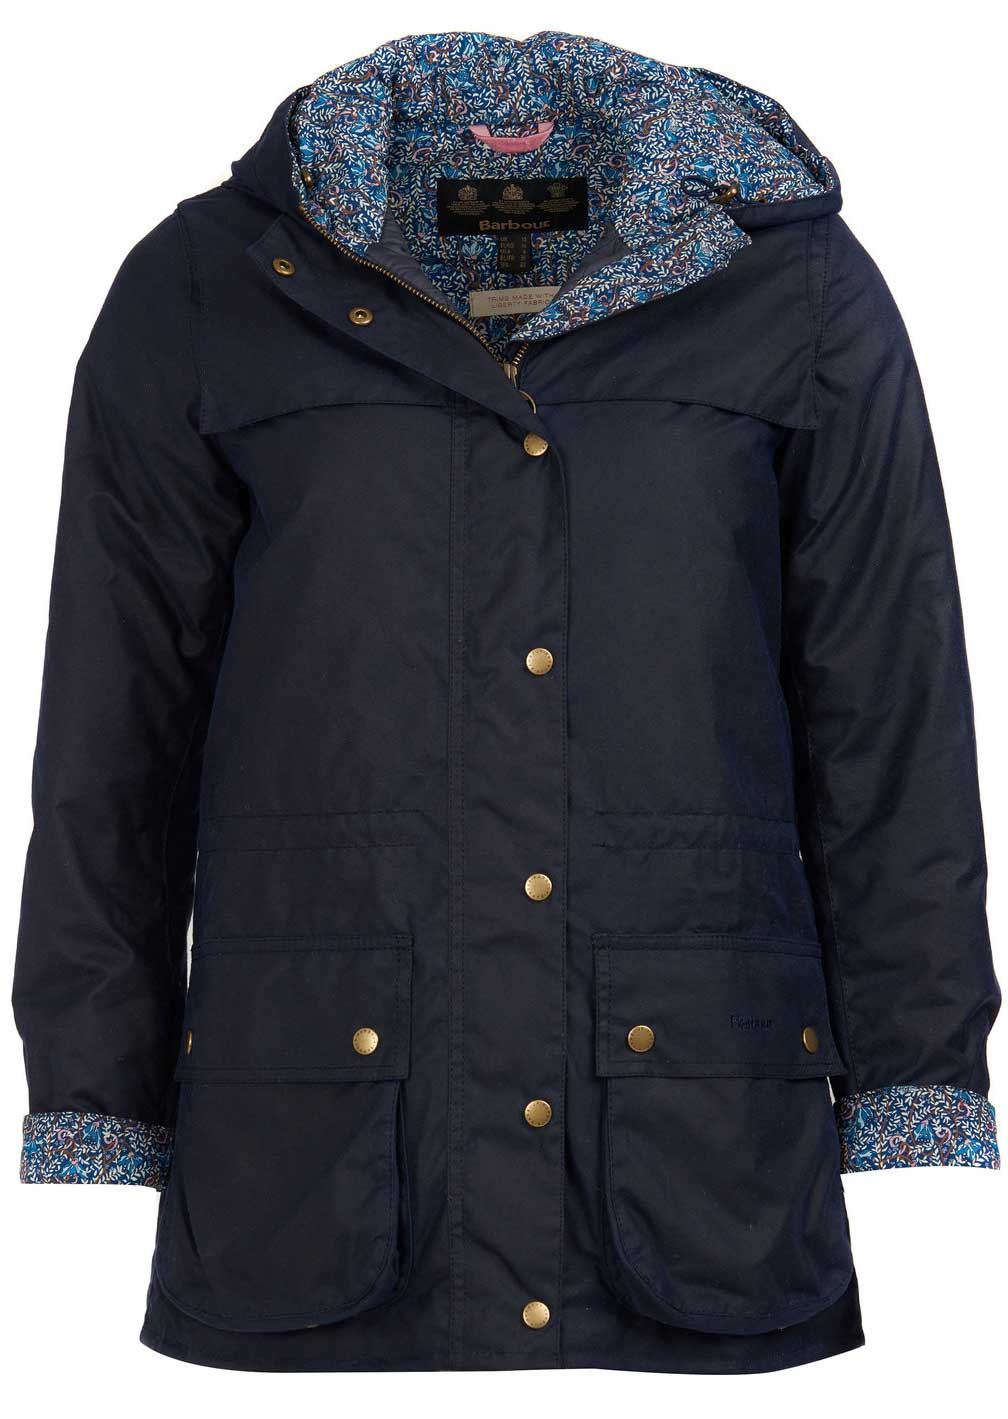 Barbour Ladies Blaise Navy Waxed Cotton Jacket With